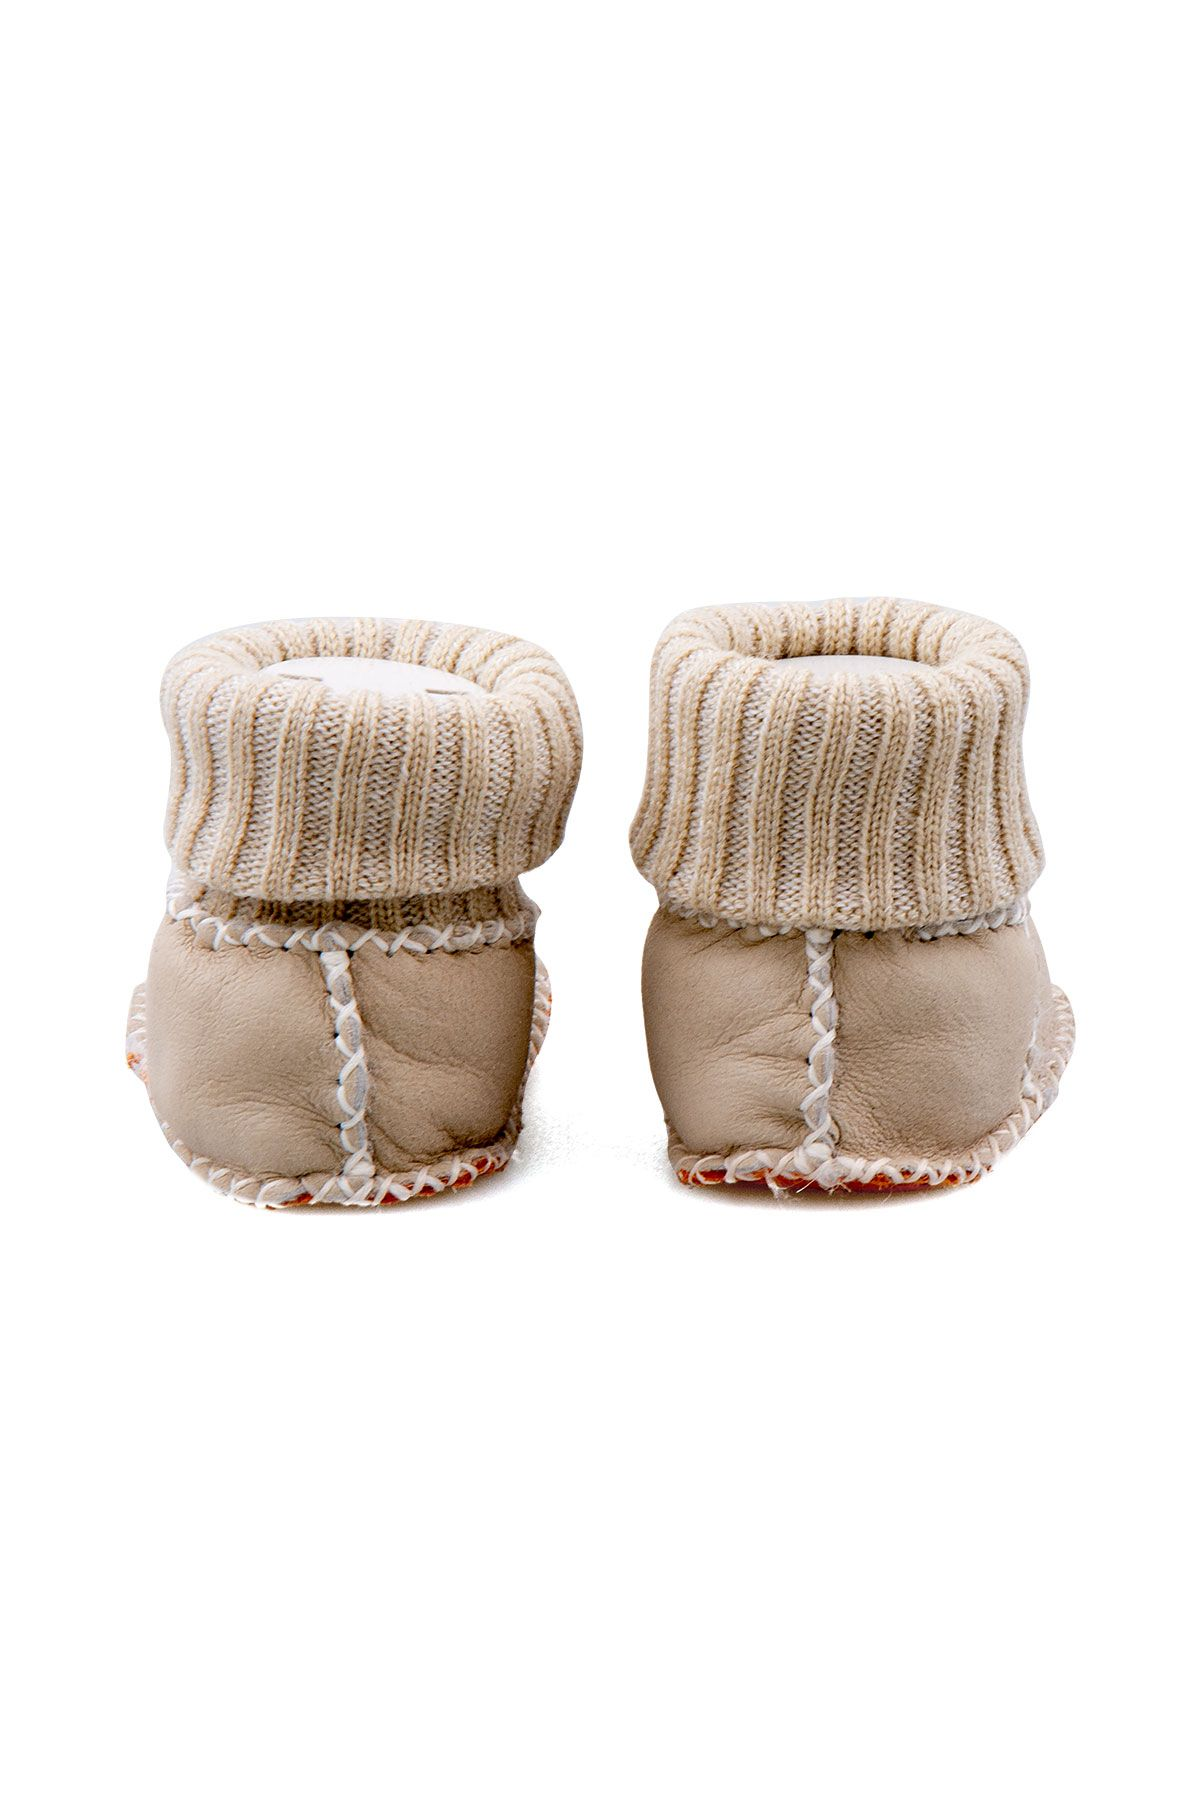 Pegia Shearling Baby's Booties With Socks 141112 Beige